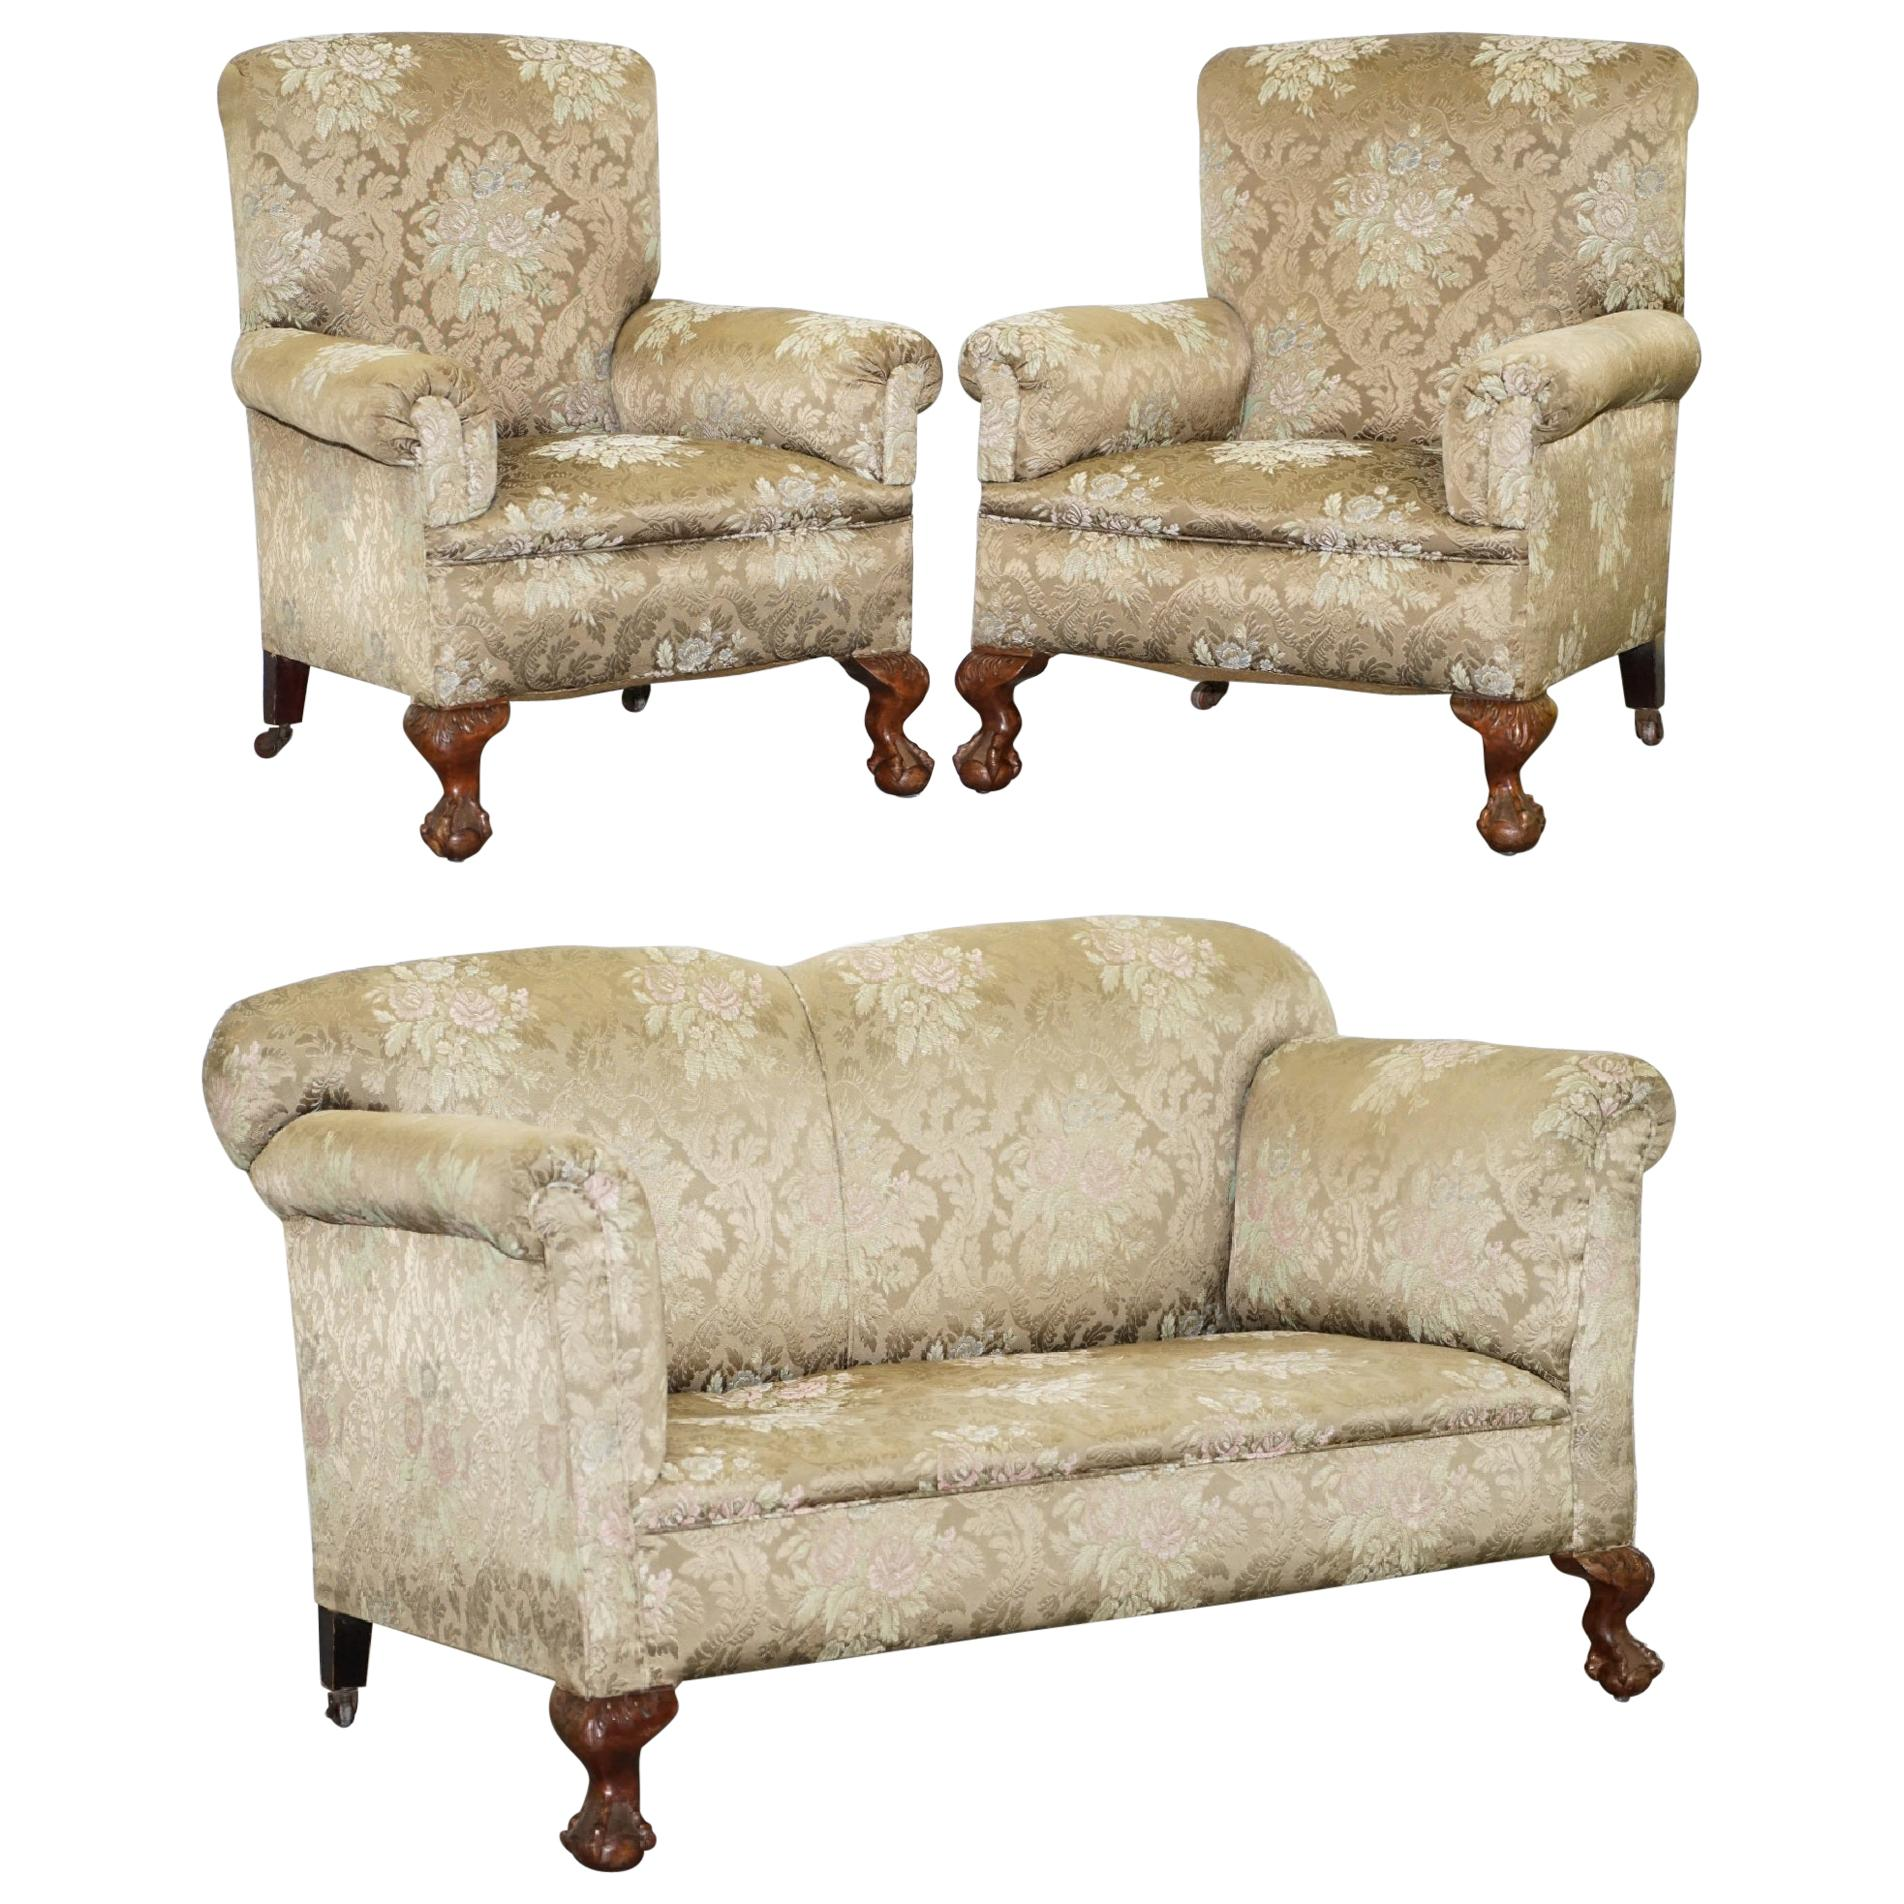 Victorian Three Piece Suite Drop Arm Sofa & Pair of Armchairs Claw and Ball Feet